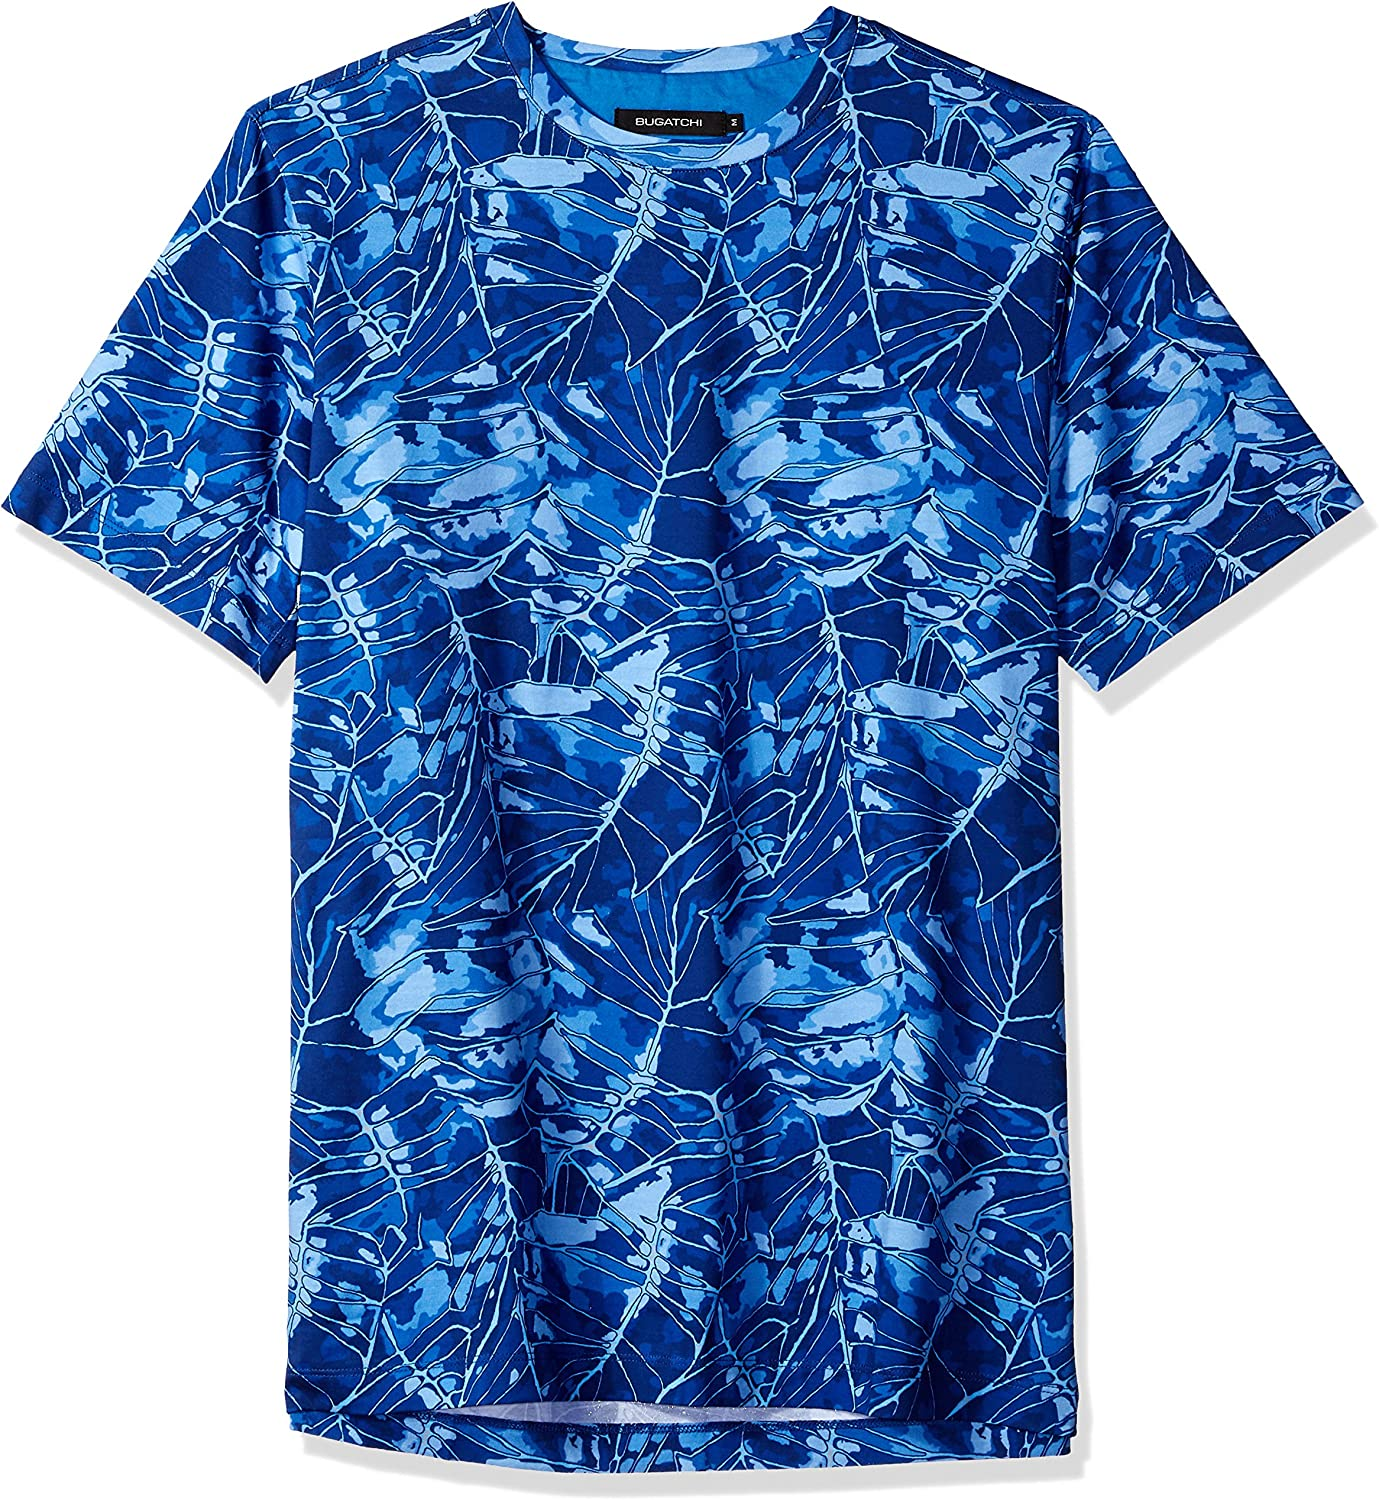 Bugatchi Mens Cotton Jersey Classic Blue All Over Print T-Shirt